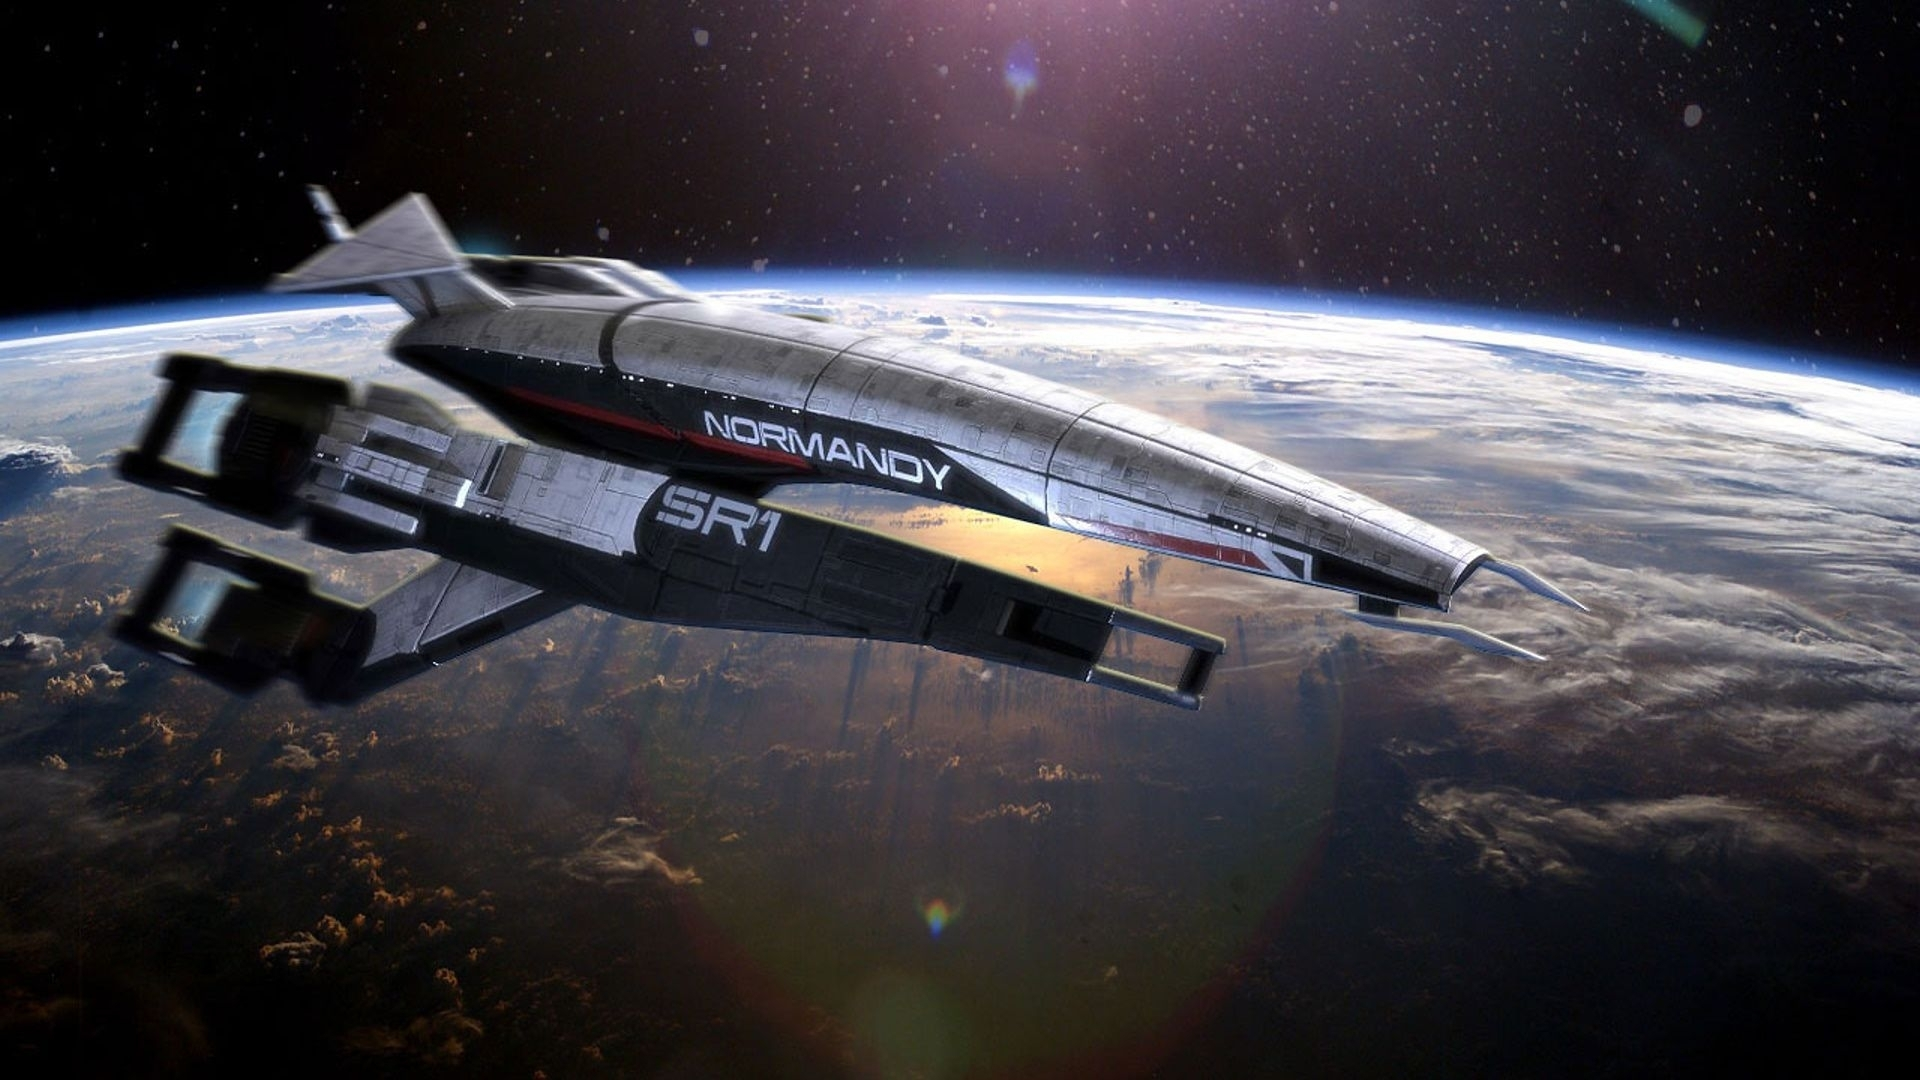 download wallpaper 1920x1080 mass effect 3, normandy, planet, space